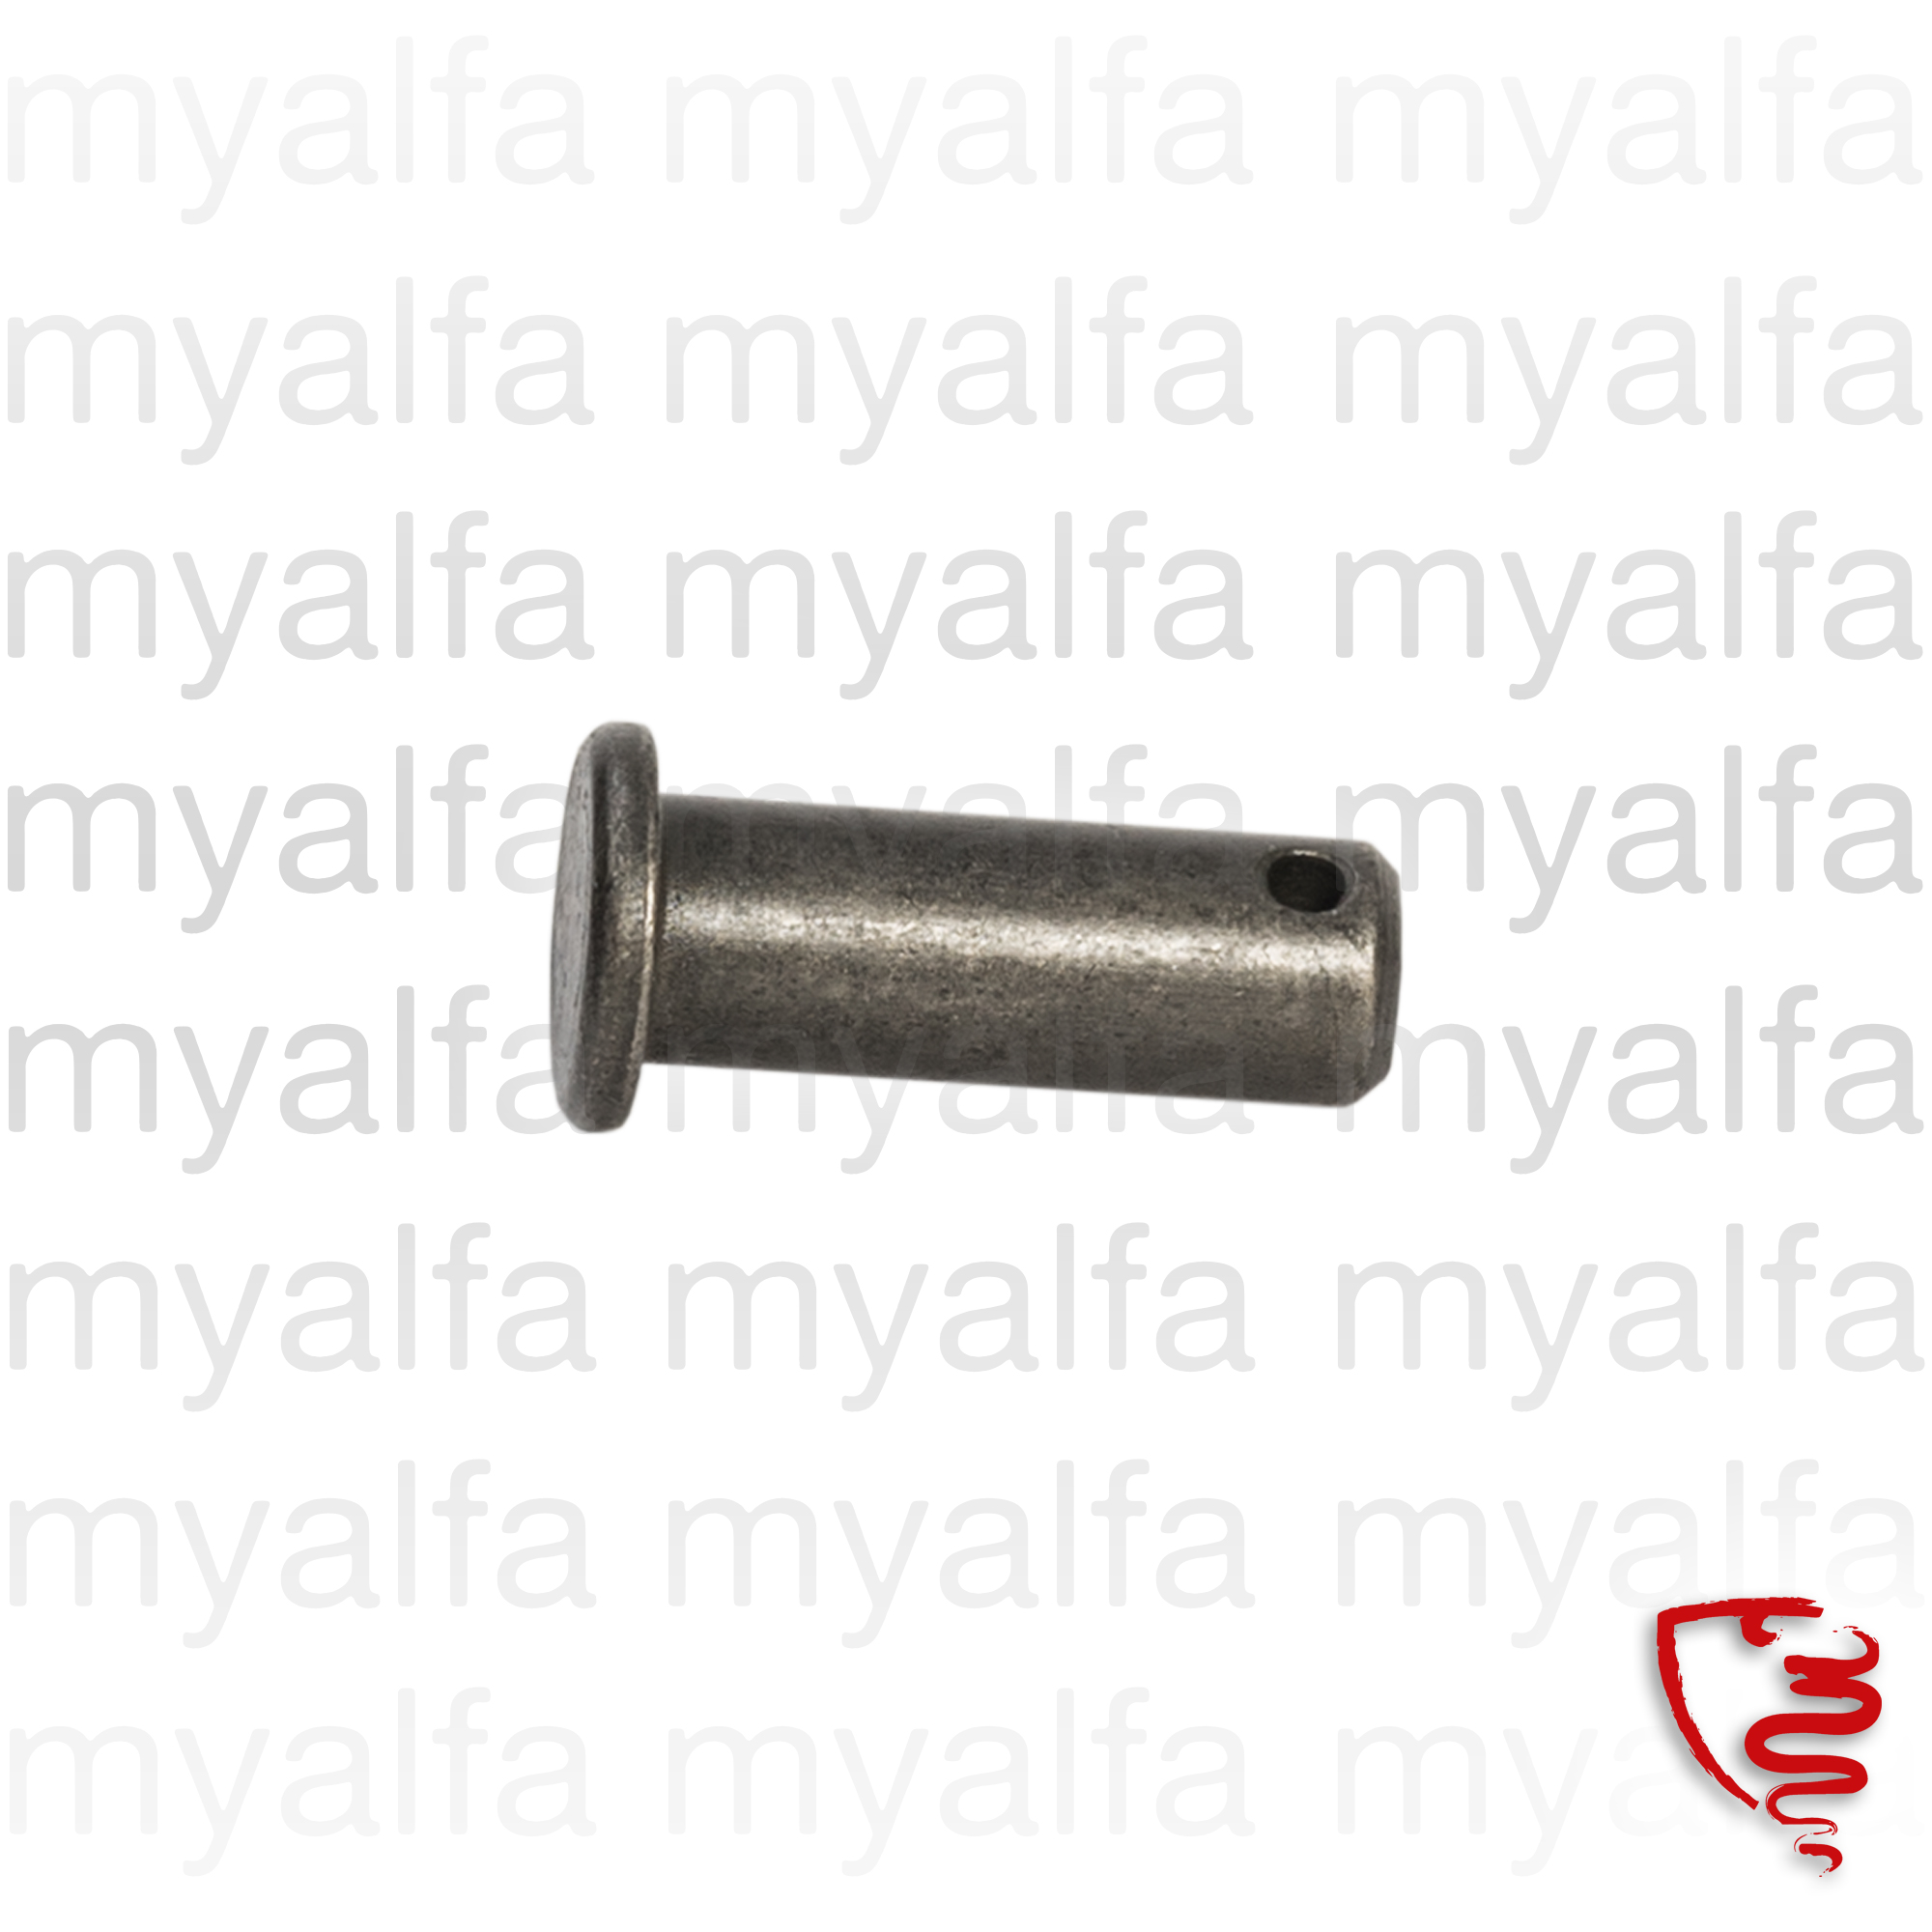 Bolt the clutch pedal for 105/115, Pedals